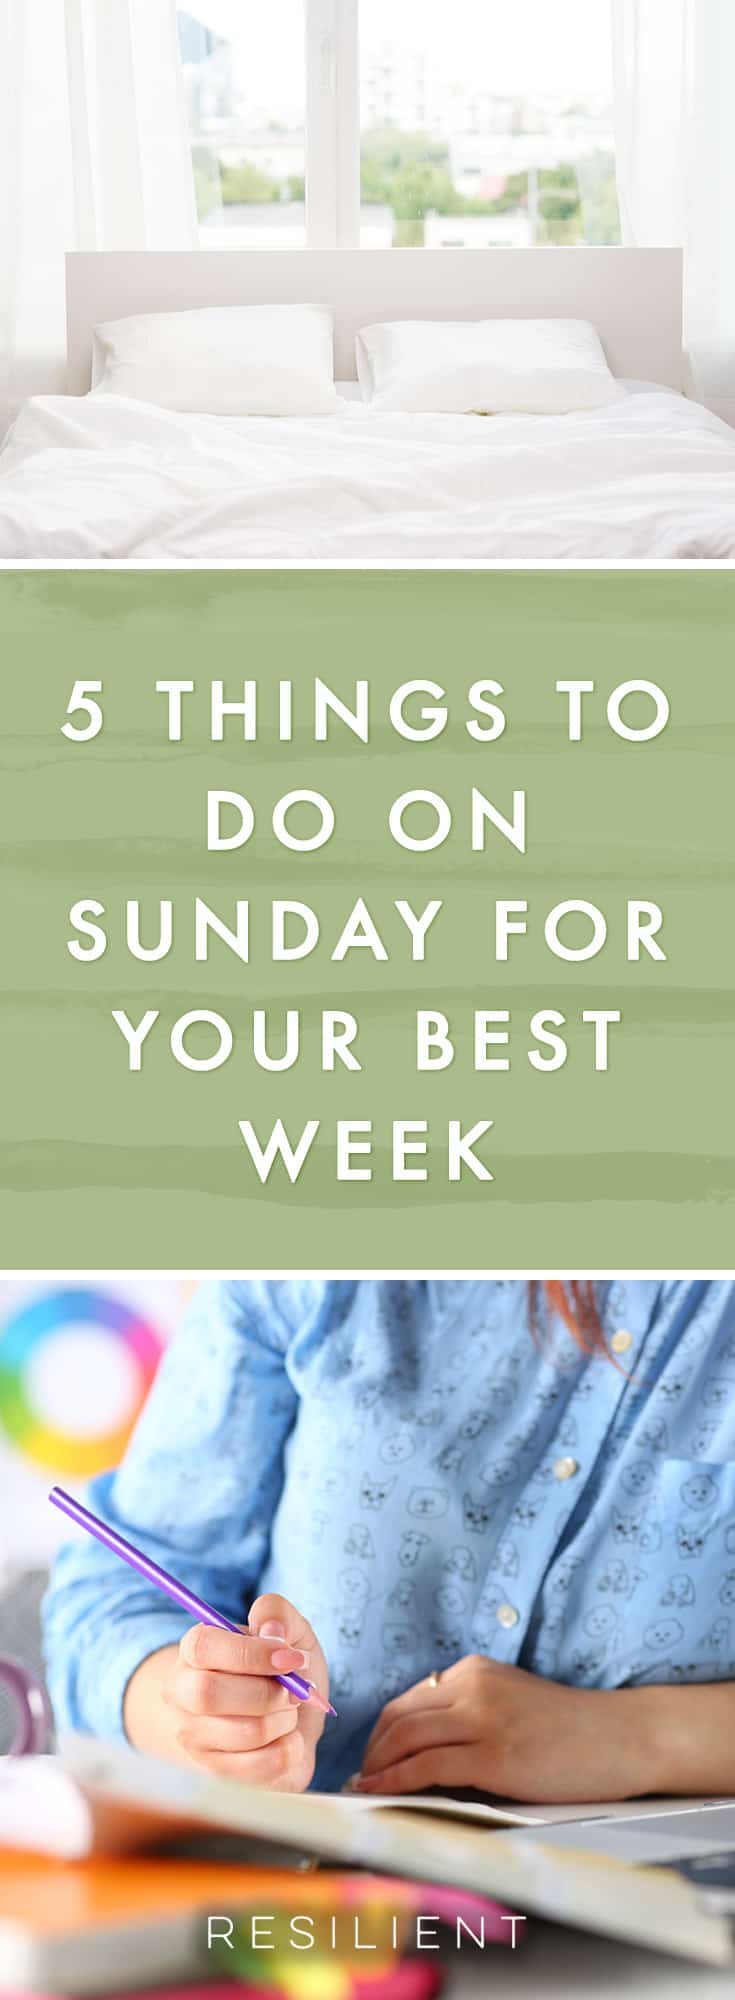 With a little planning and preparation, things in life become a lot easier and your week can go much more smoothly and save you a lot of stress. Here are 5 things to do on Sunday for a better week.